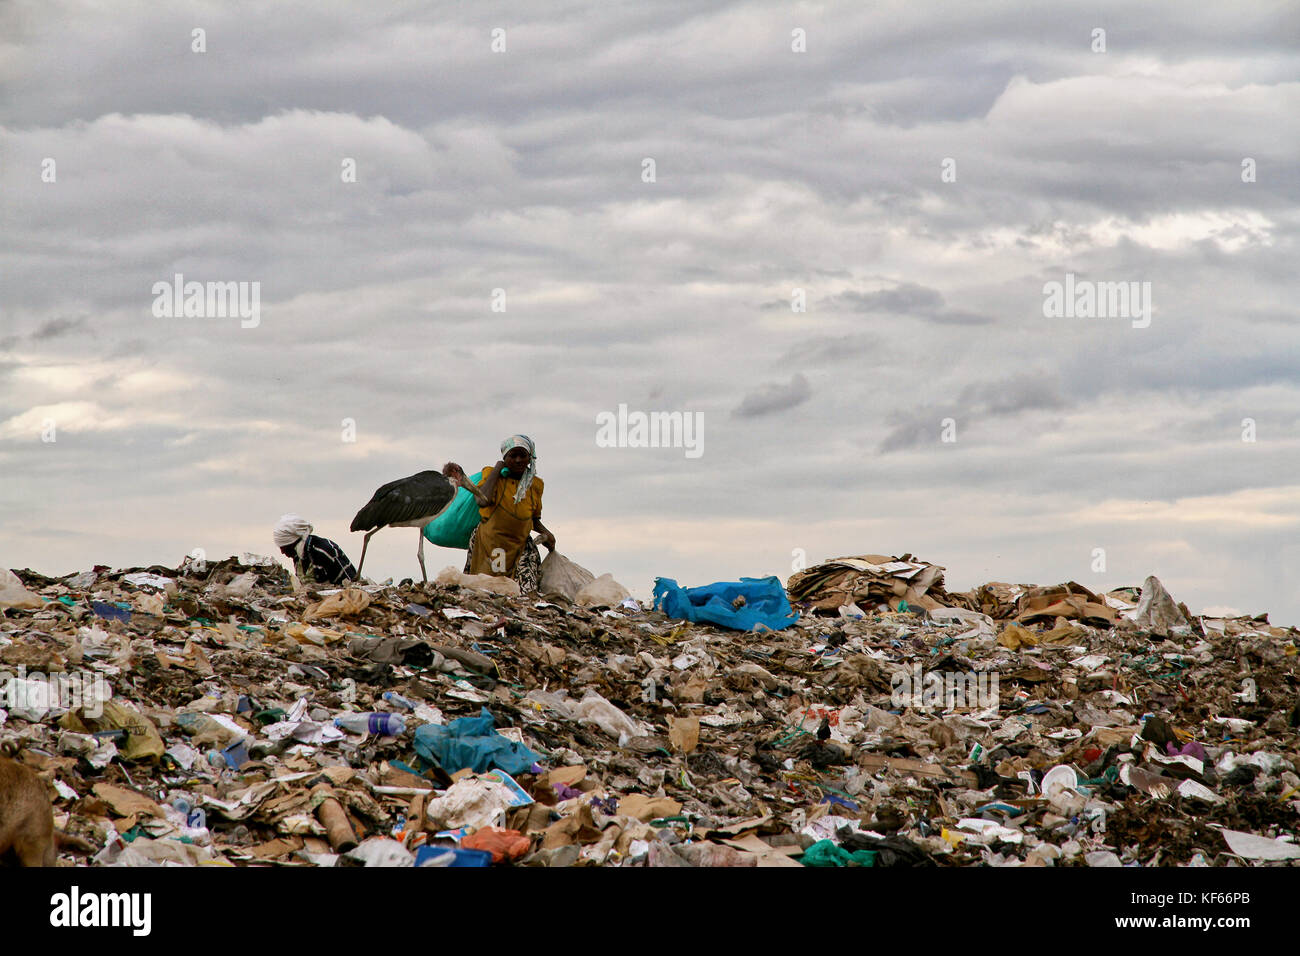 Living in the Kenya Slum Aerias - Woman collecting materials on the biggest dump site, Dandora Dumpsite, Mairobi - Stock Image